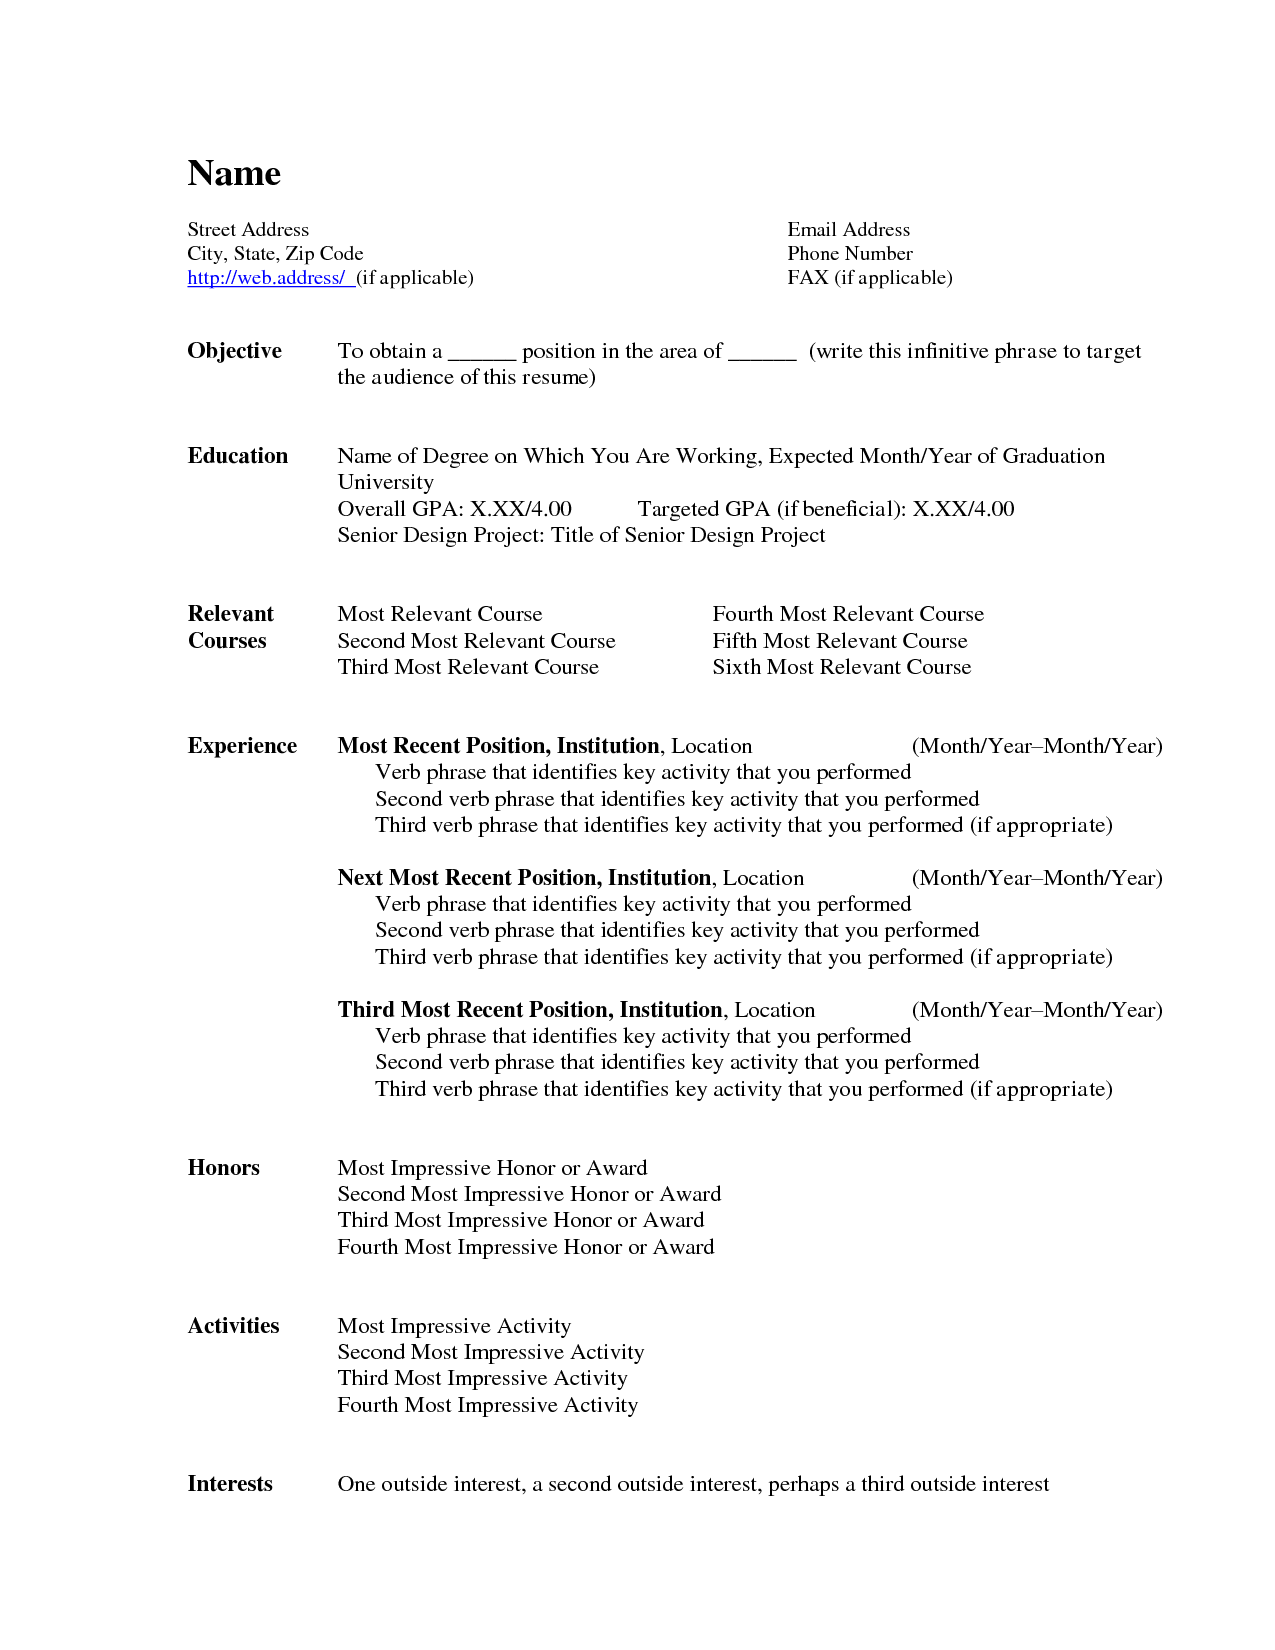 microsoft word resume template resume builder resume resume httpwwwjobresume - Microsoft Word Template Resume